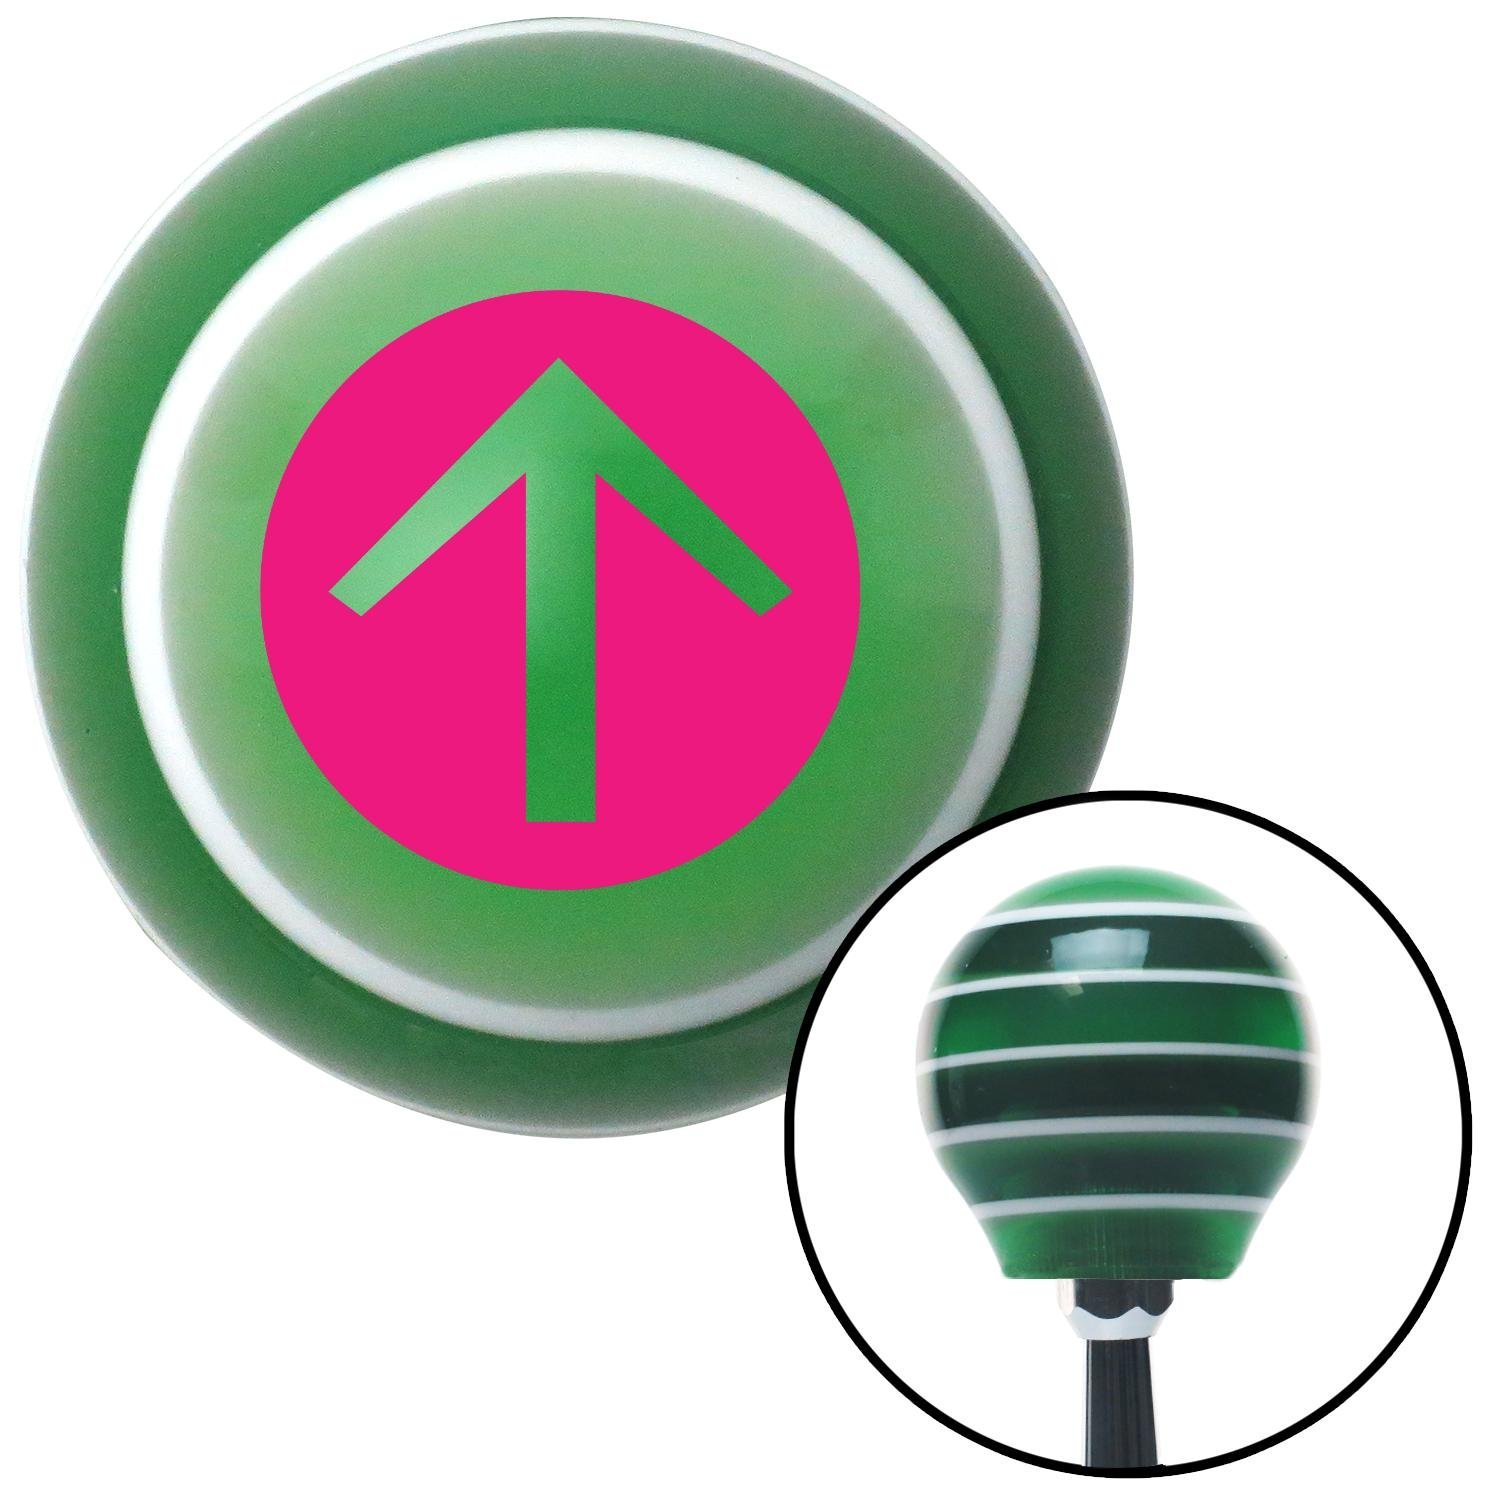 Pink Circle Directional Arrow Up American Shifter 121269 Green Stripe Shift Knob with M16 x 1.5 Insert